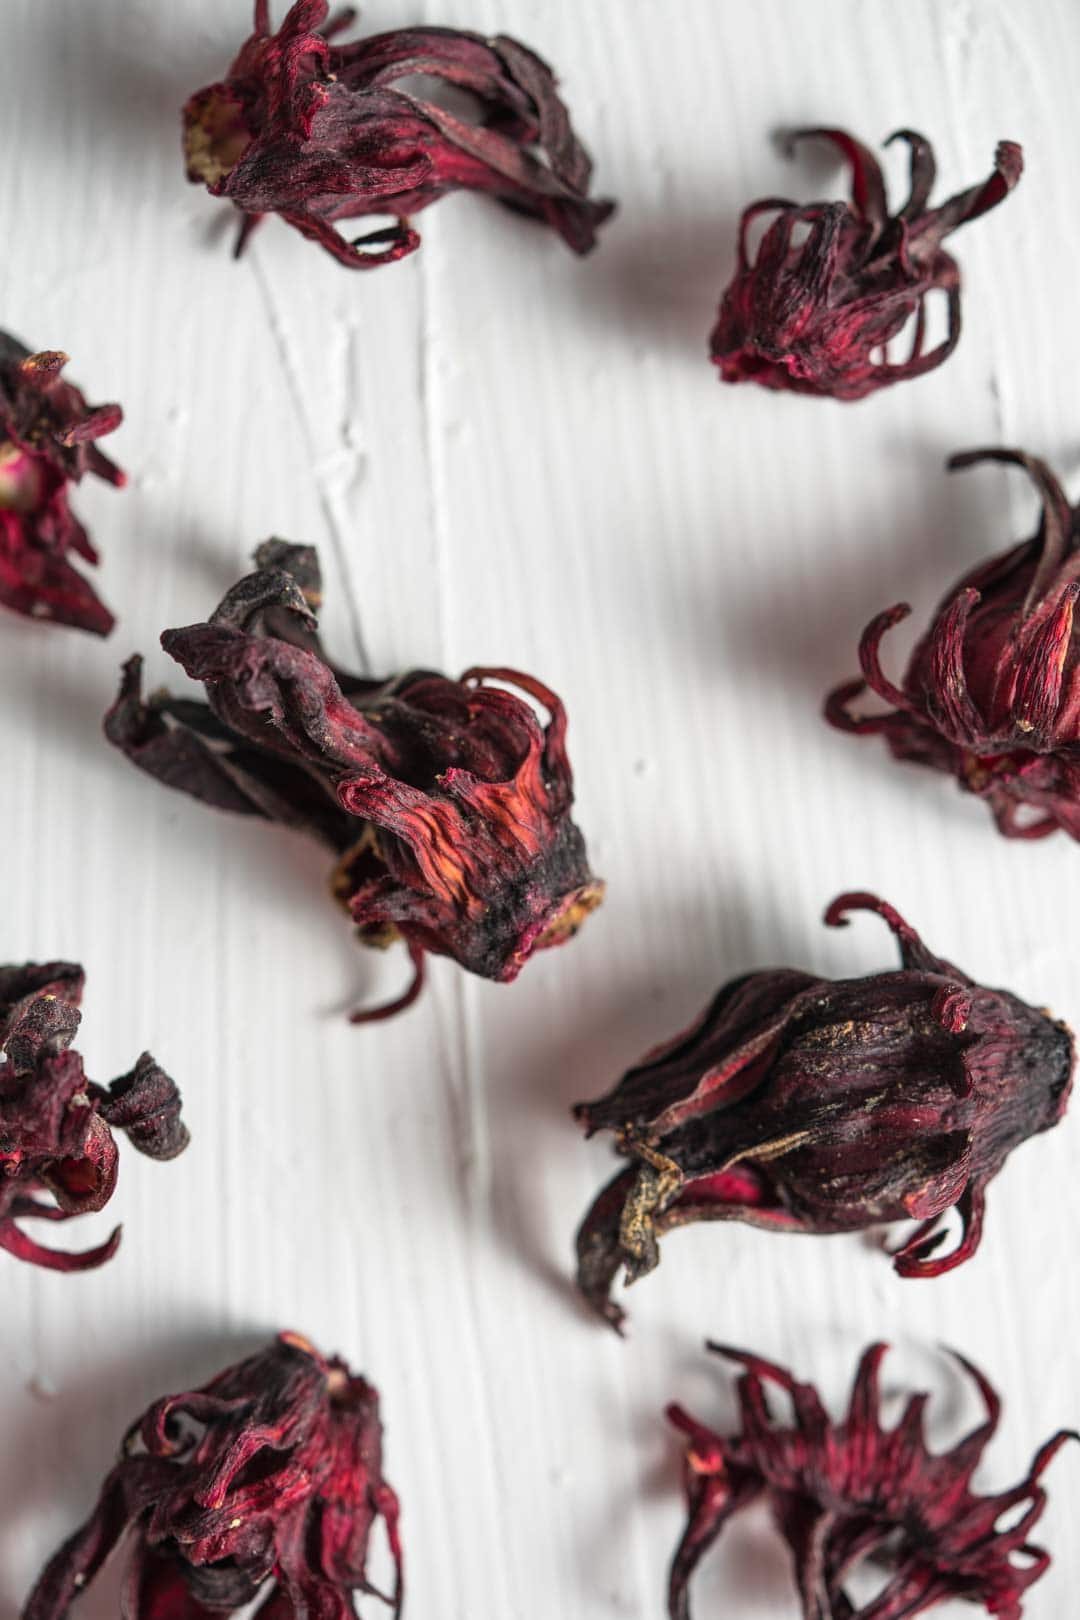 dried roselle flowers scattered around a white table